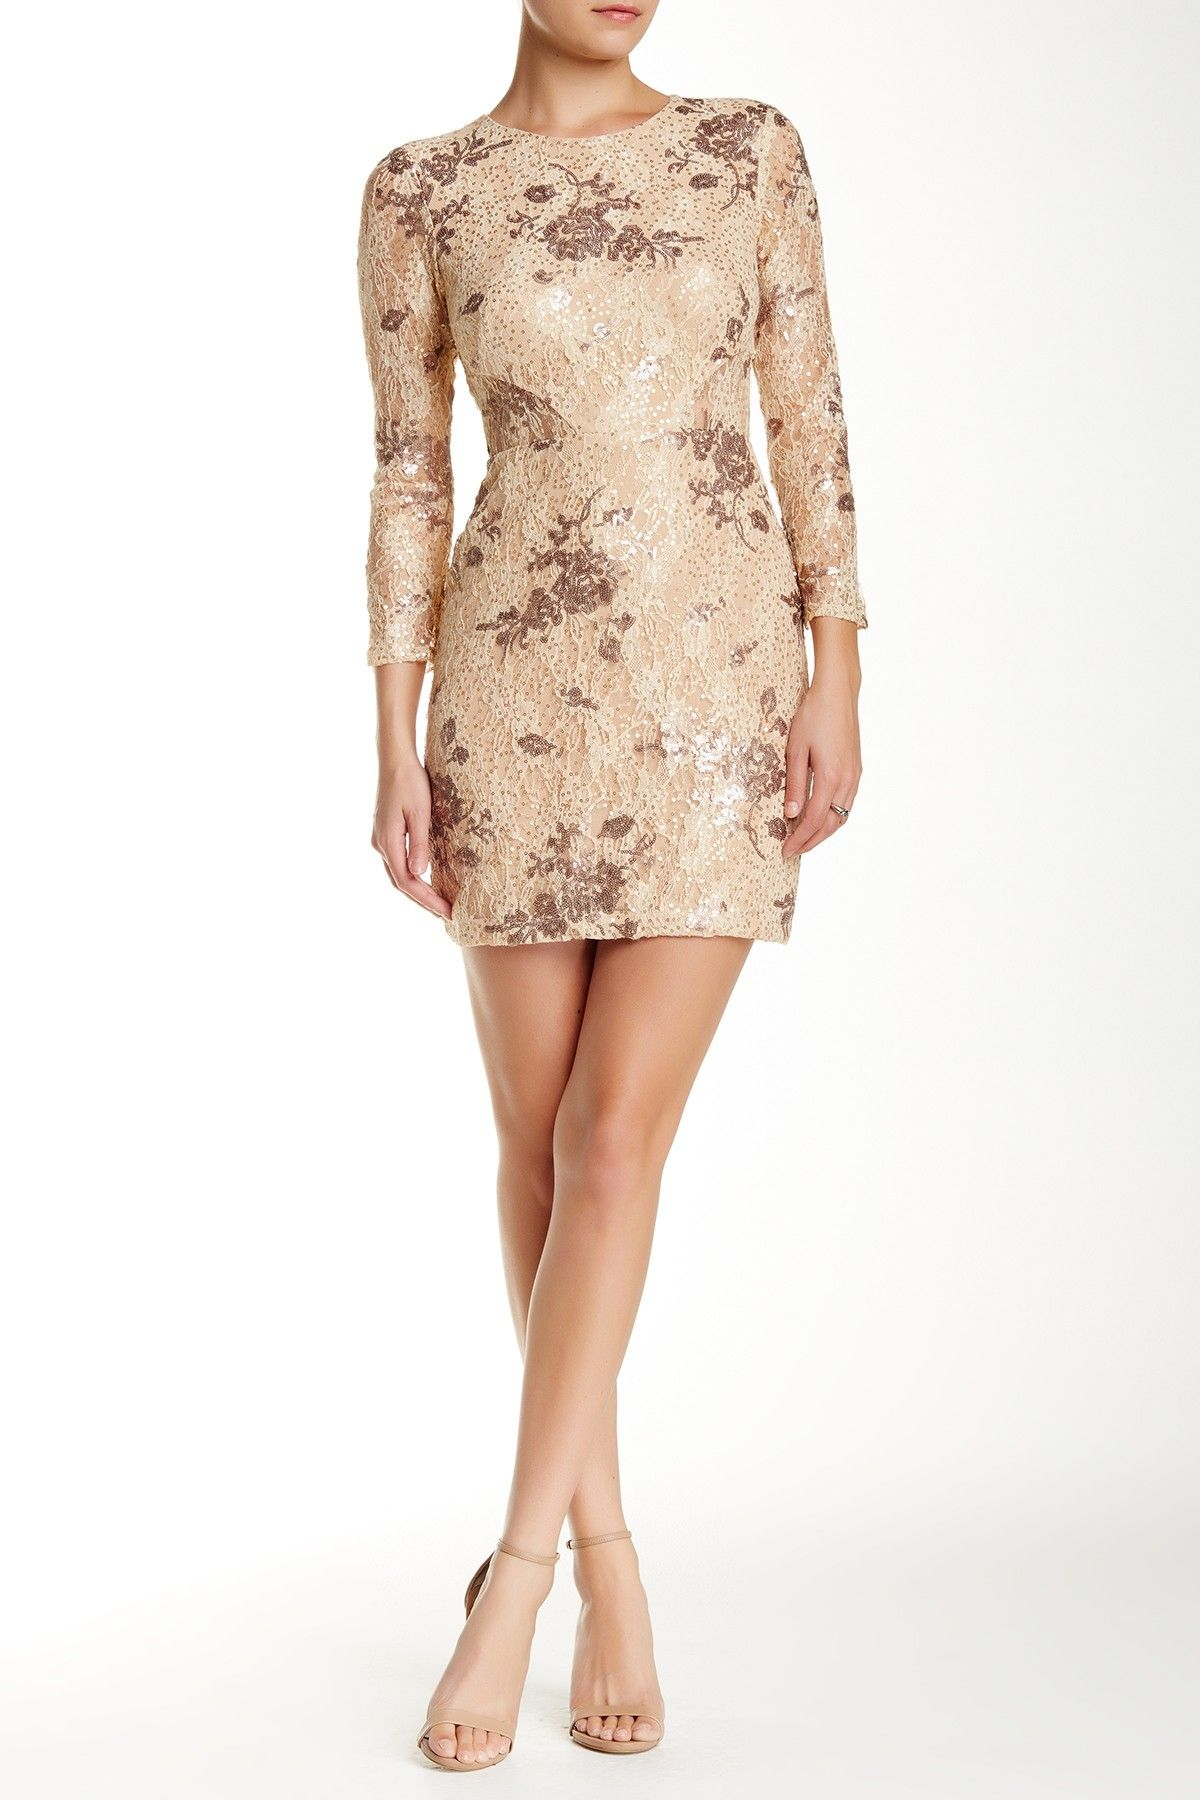 Holiday Nordstrom dresses pictures rare photo